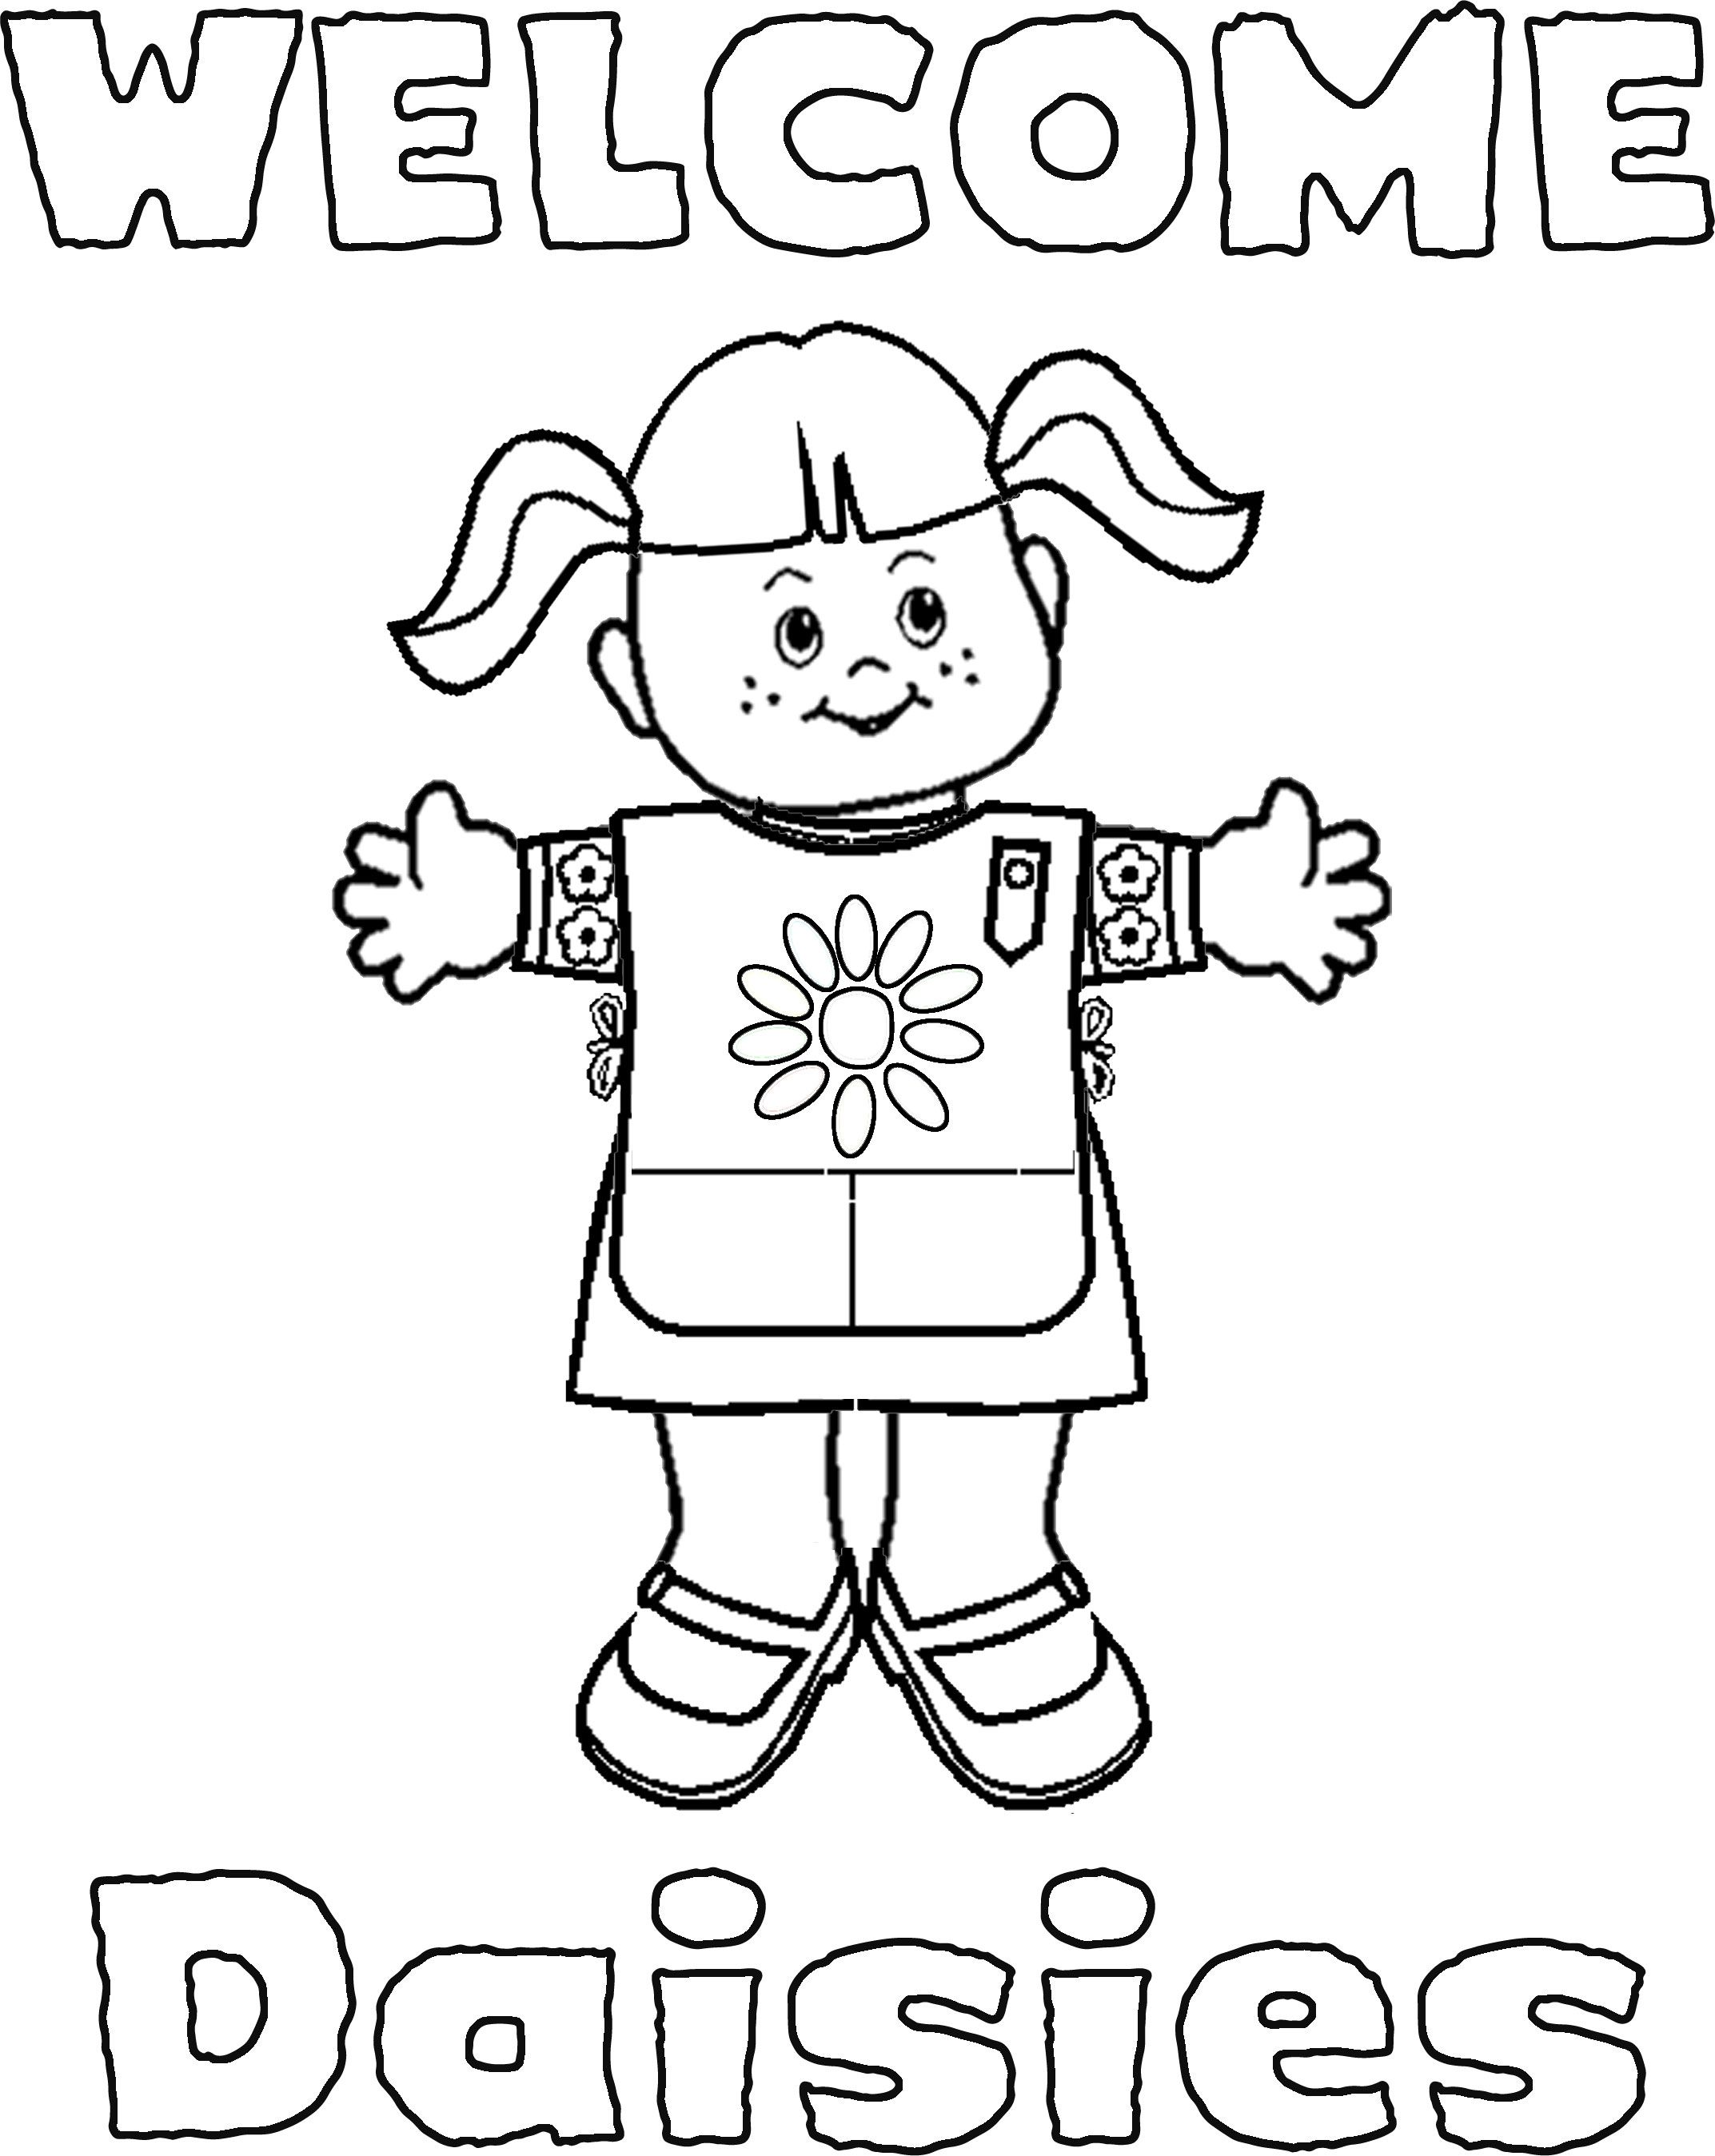 coloring pages for girls age 11 girl scouts coloring pages coloring home coloring girls for pages age 11